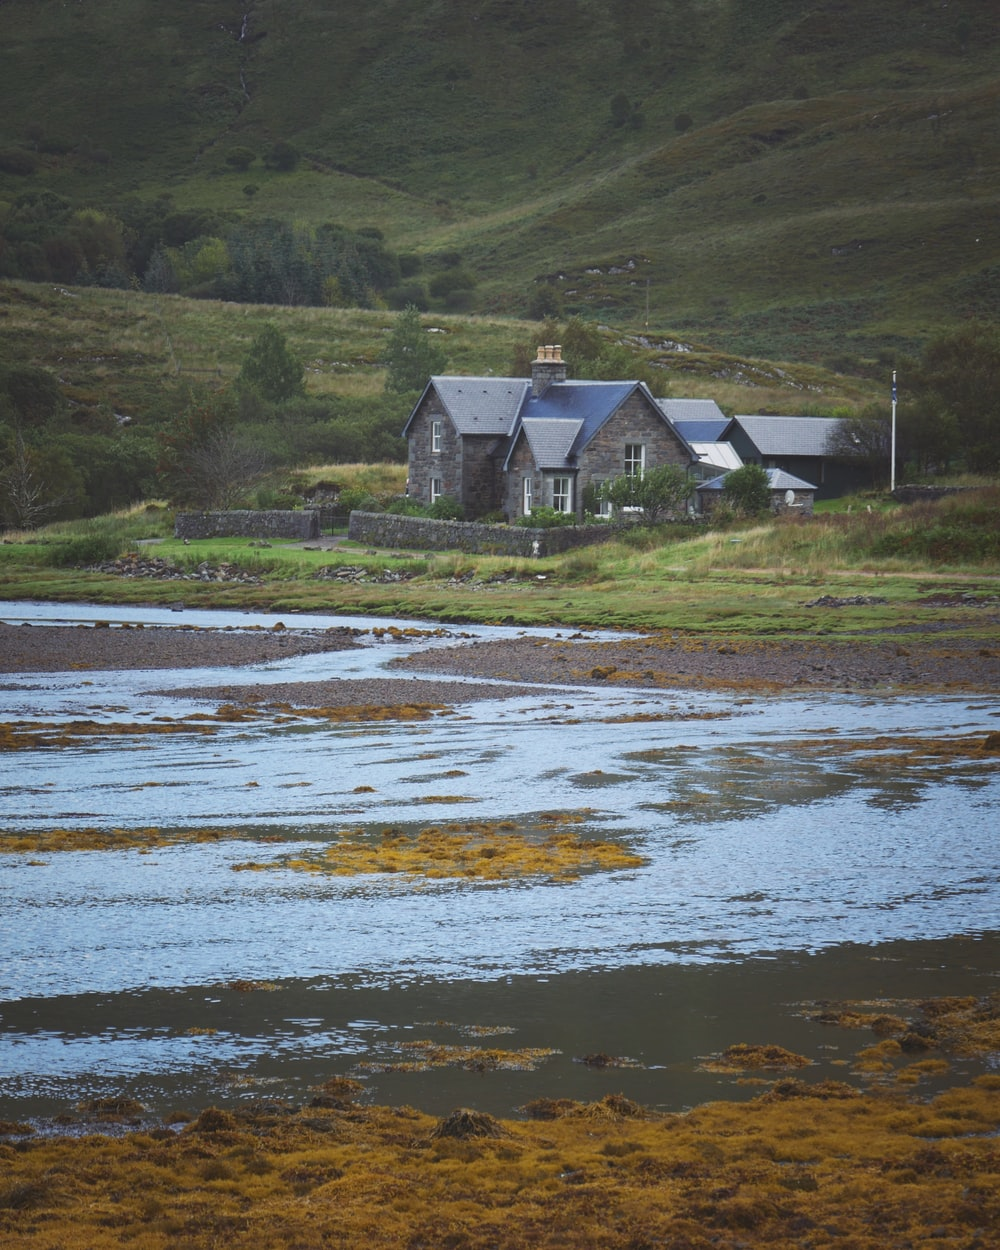 brown and gray concrete house near body of water during daytime